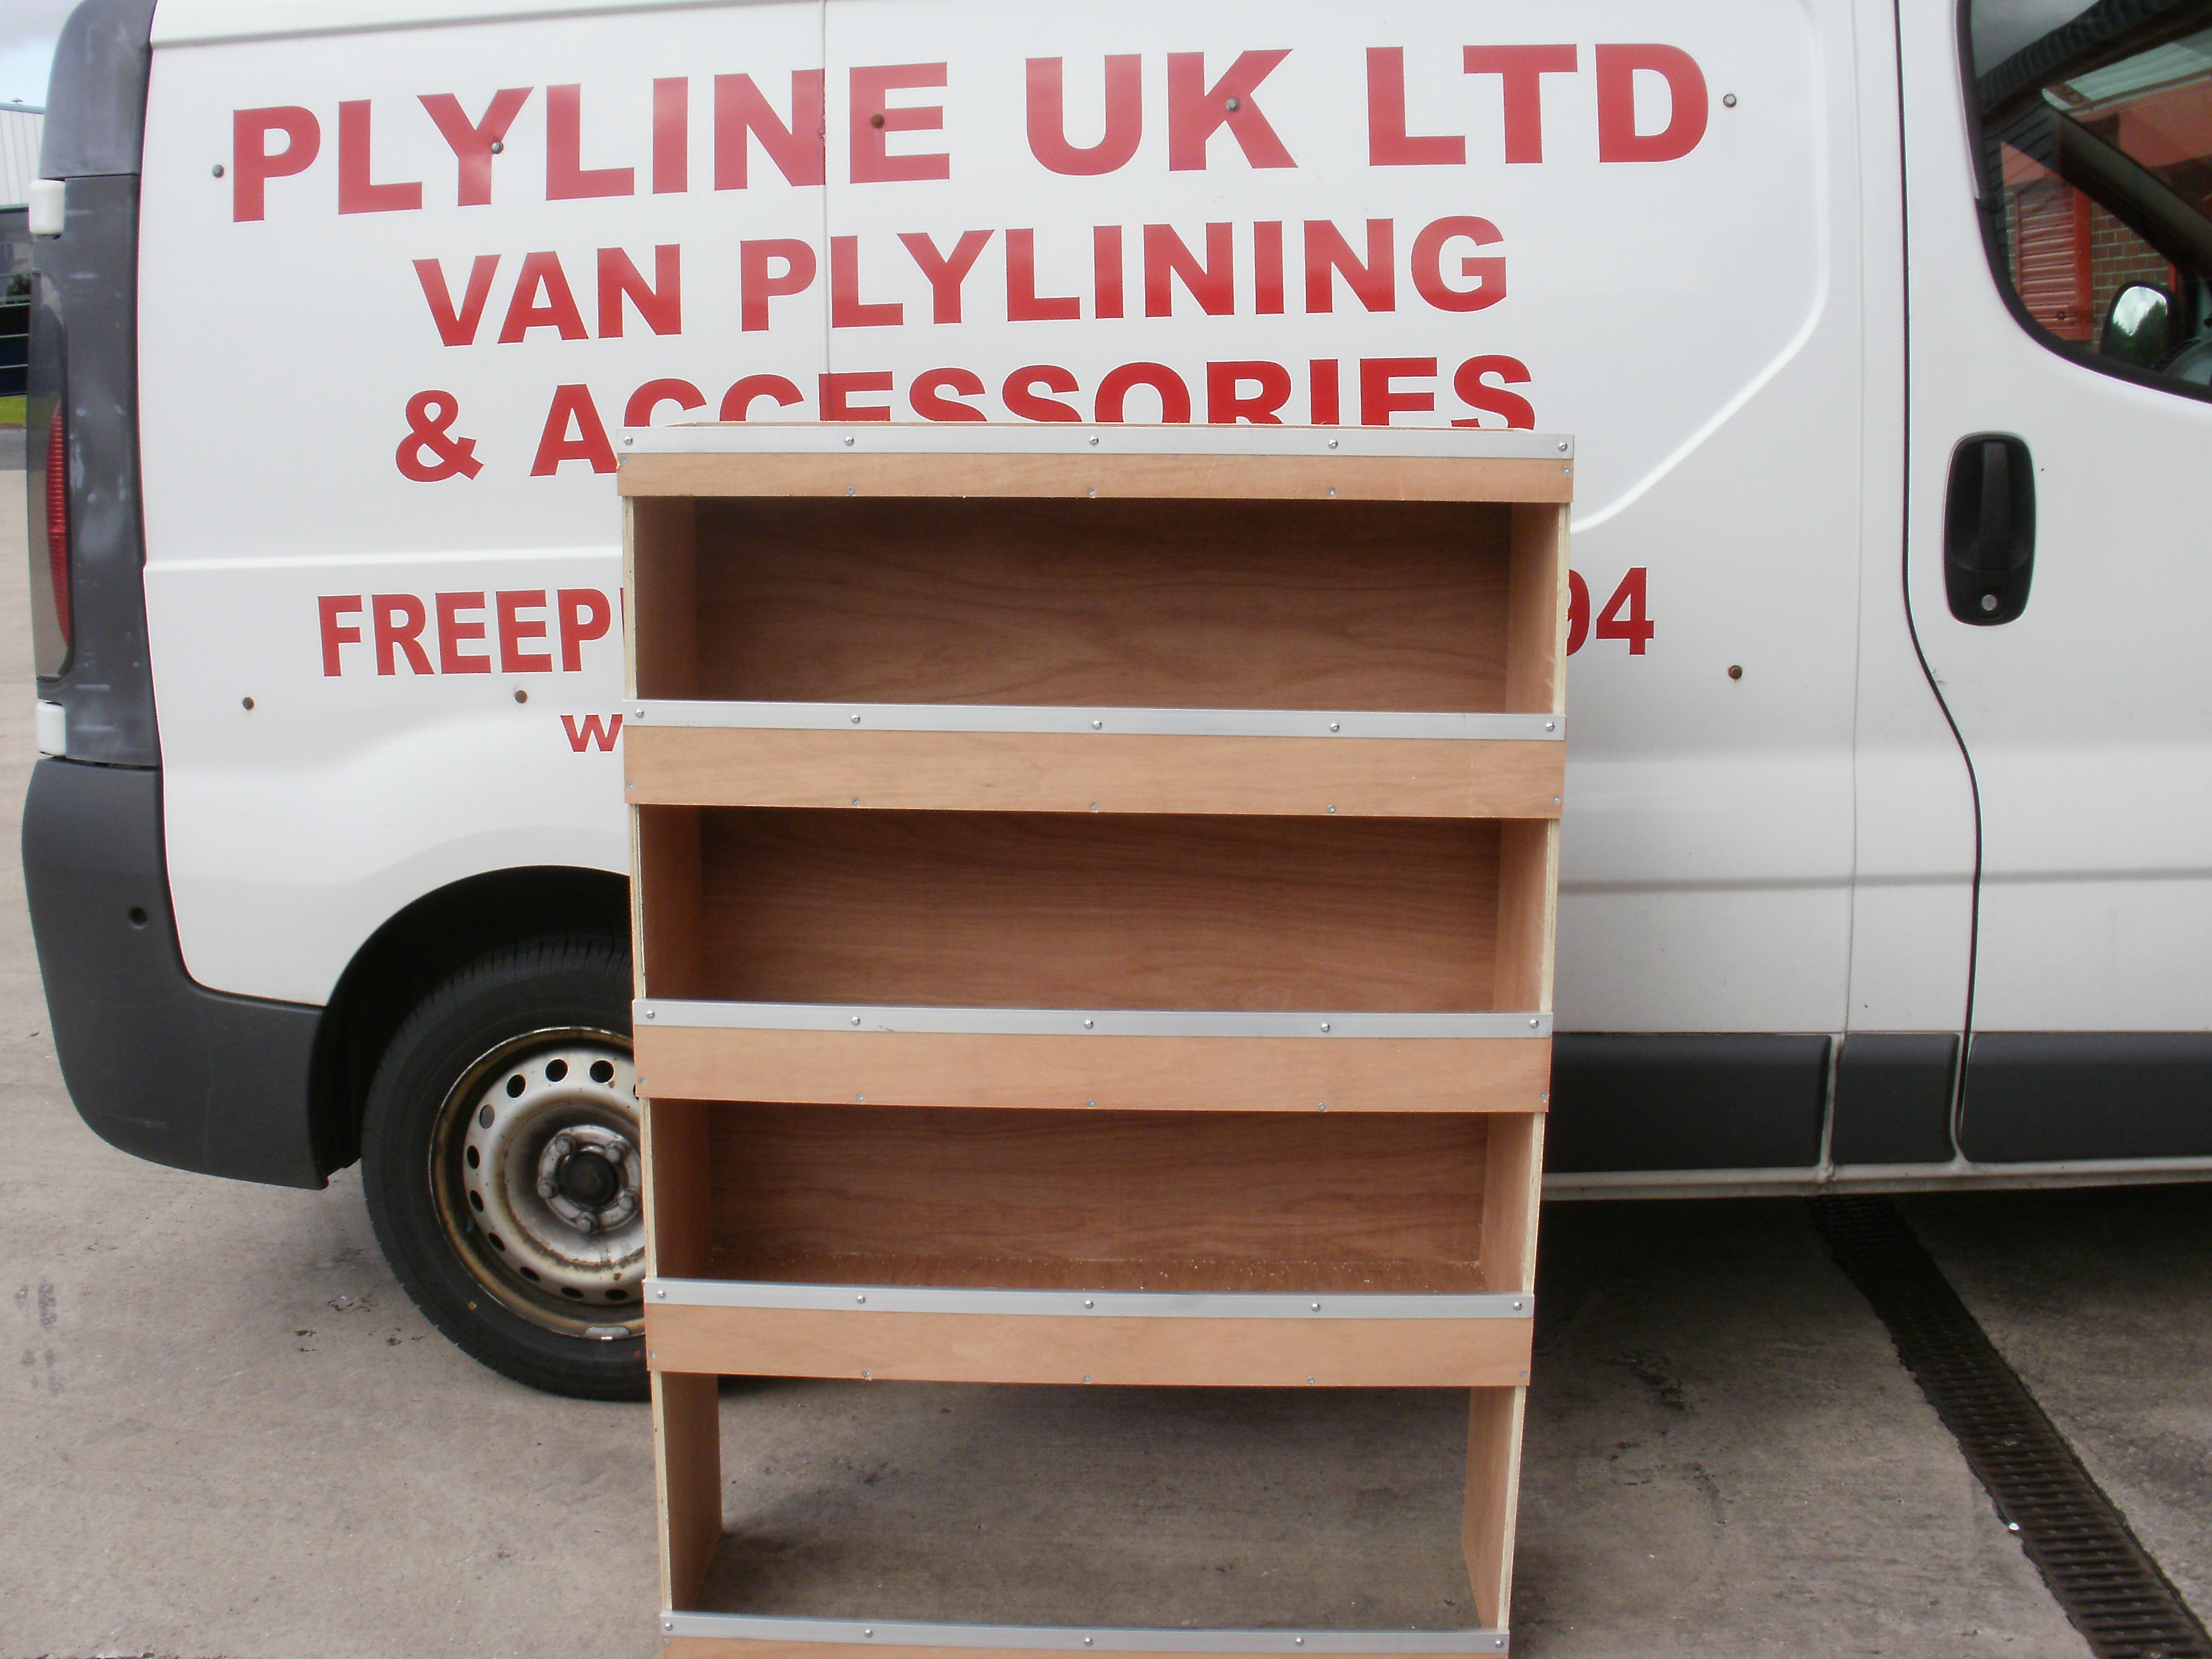 Plywood Shelving System 3ft X 4ft X 1ft Plyline Uk